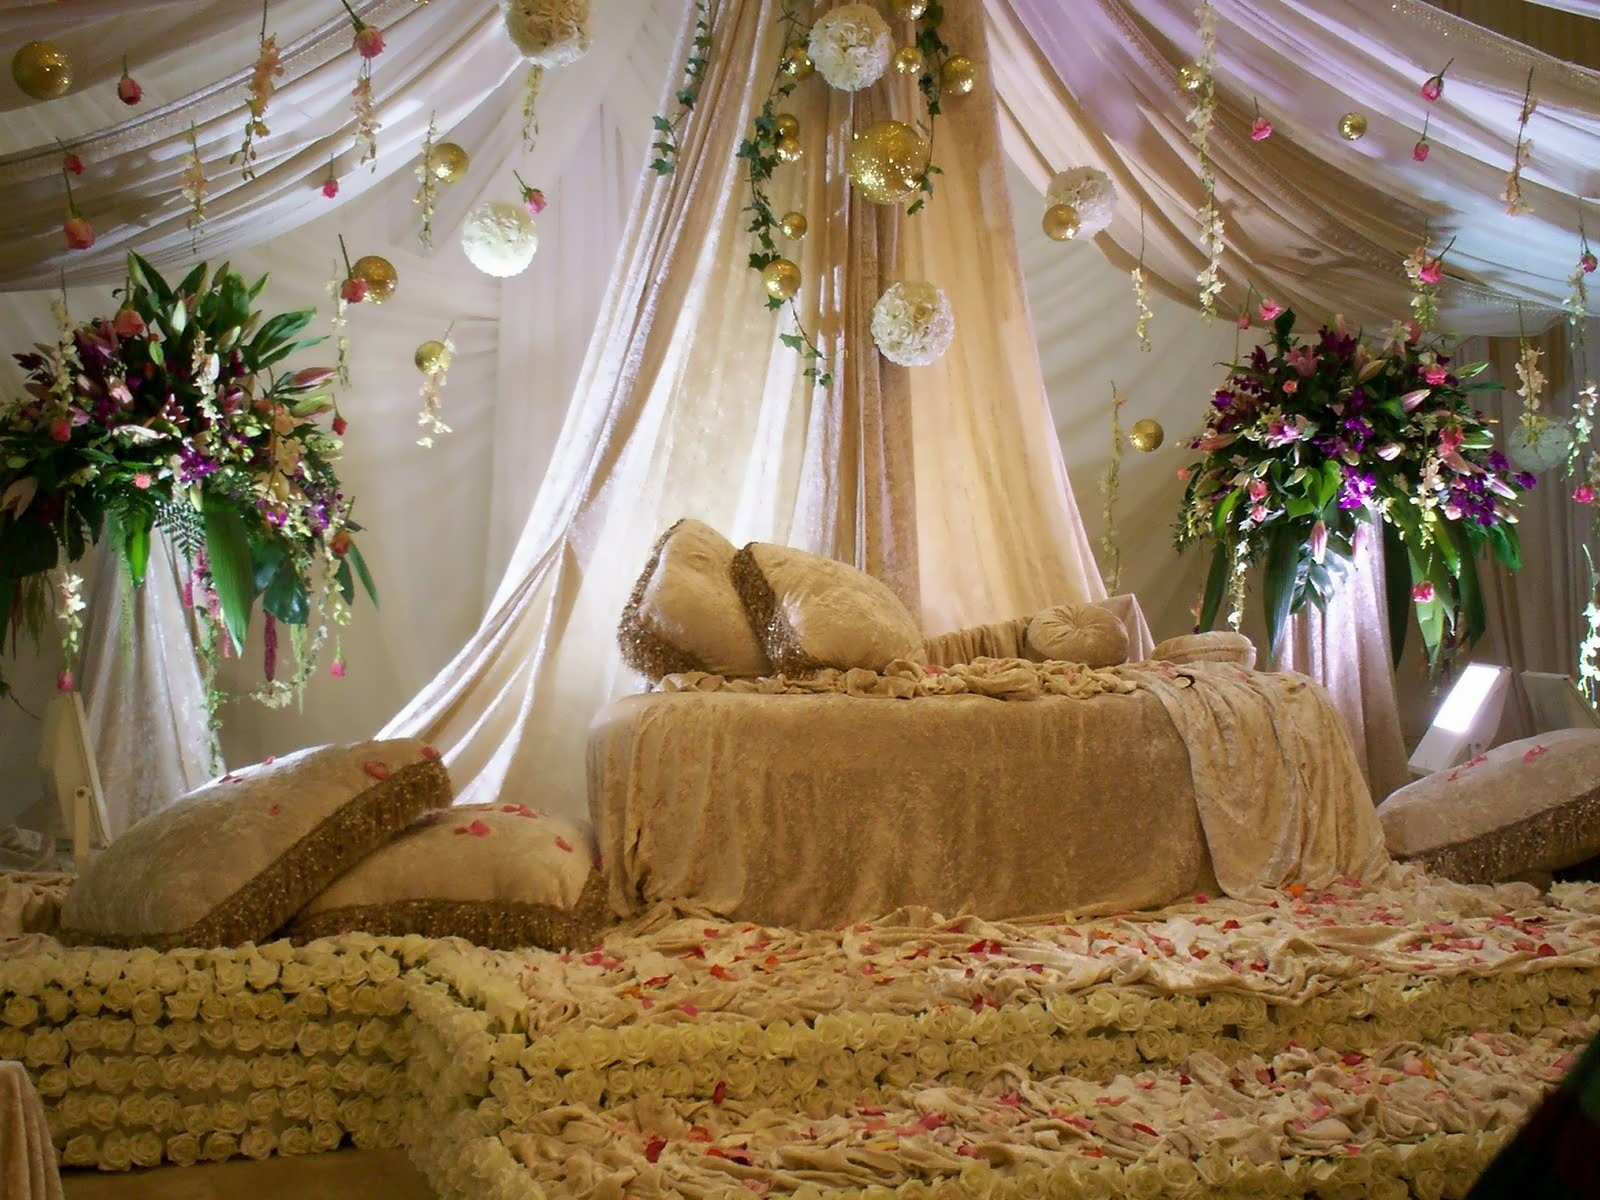 best wedding decorations ideas on a budget 99 wedding ideas - Wedding Decorations On A Budget